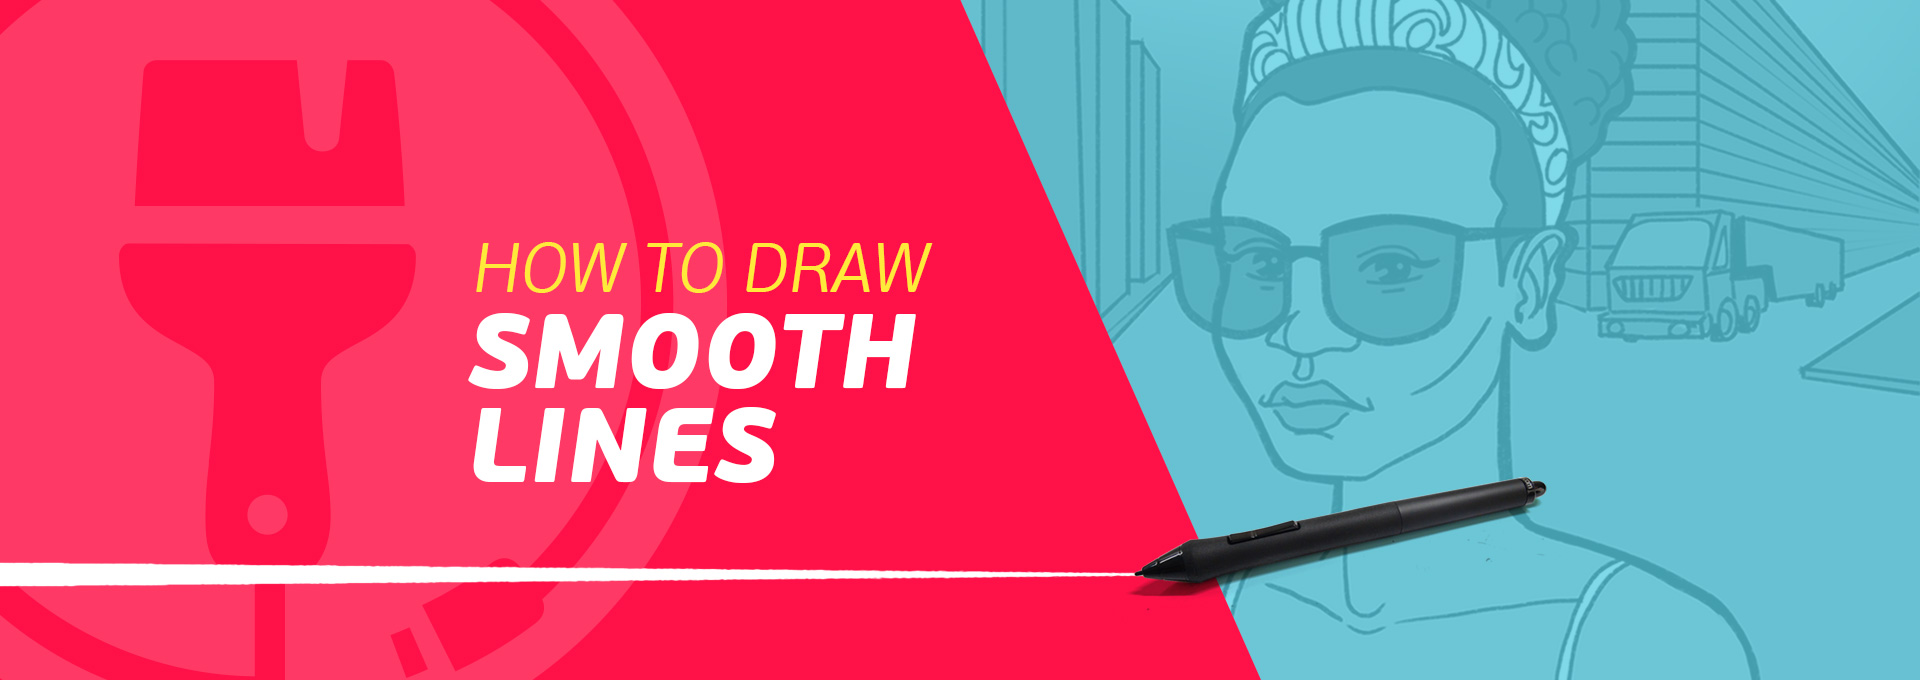 How to Draw PERFECT, Smooth Lines on Your Tablet (3 Life